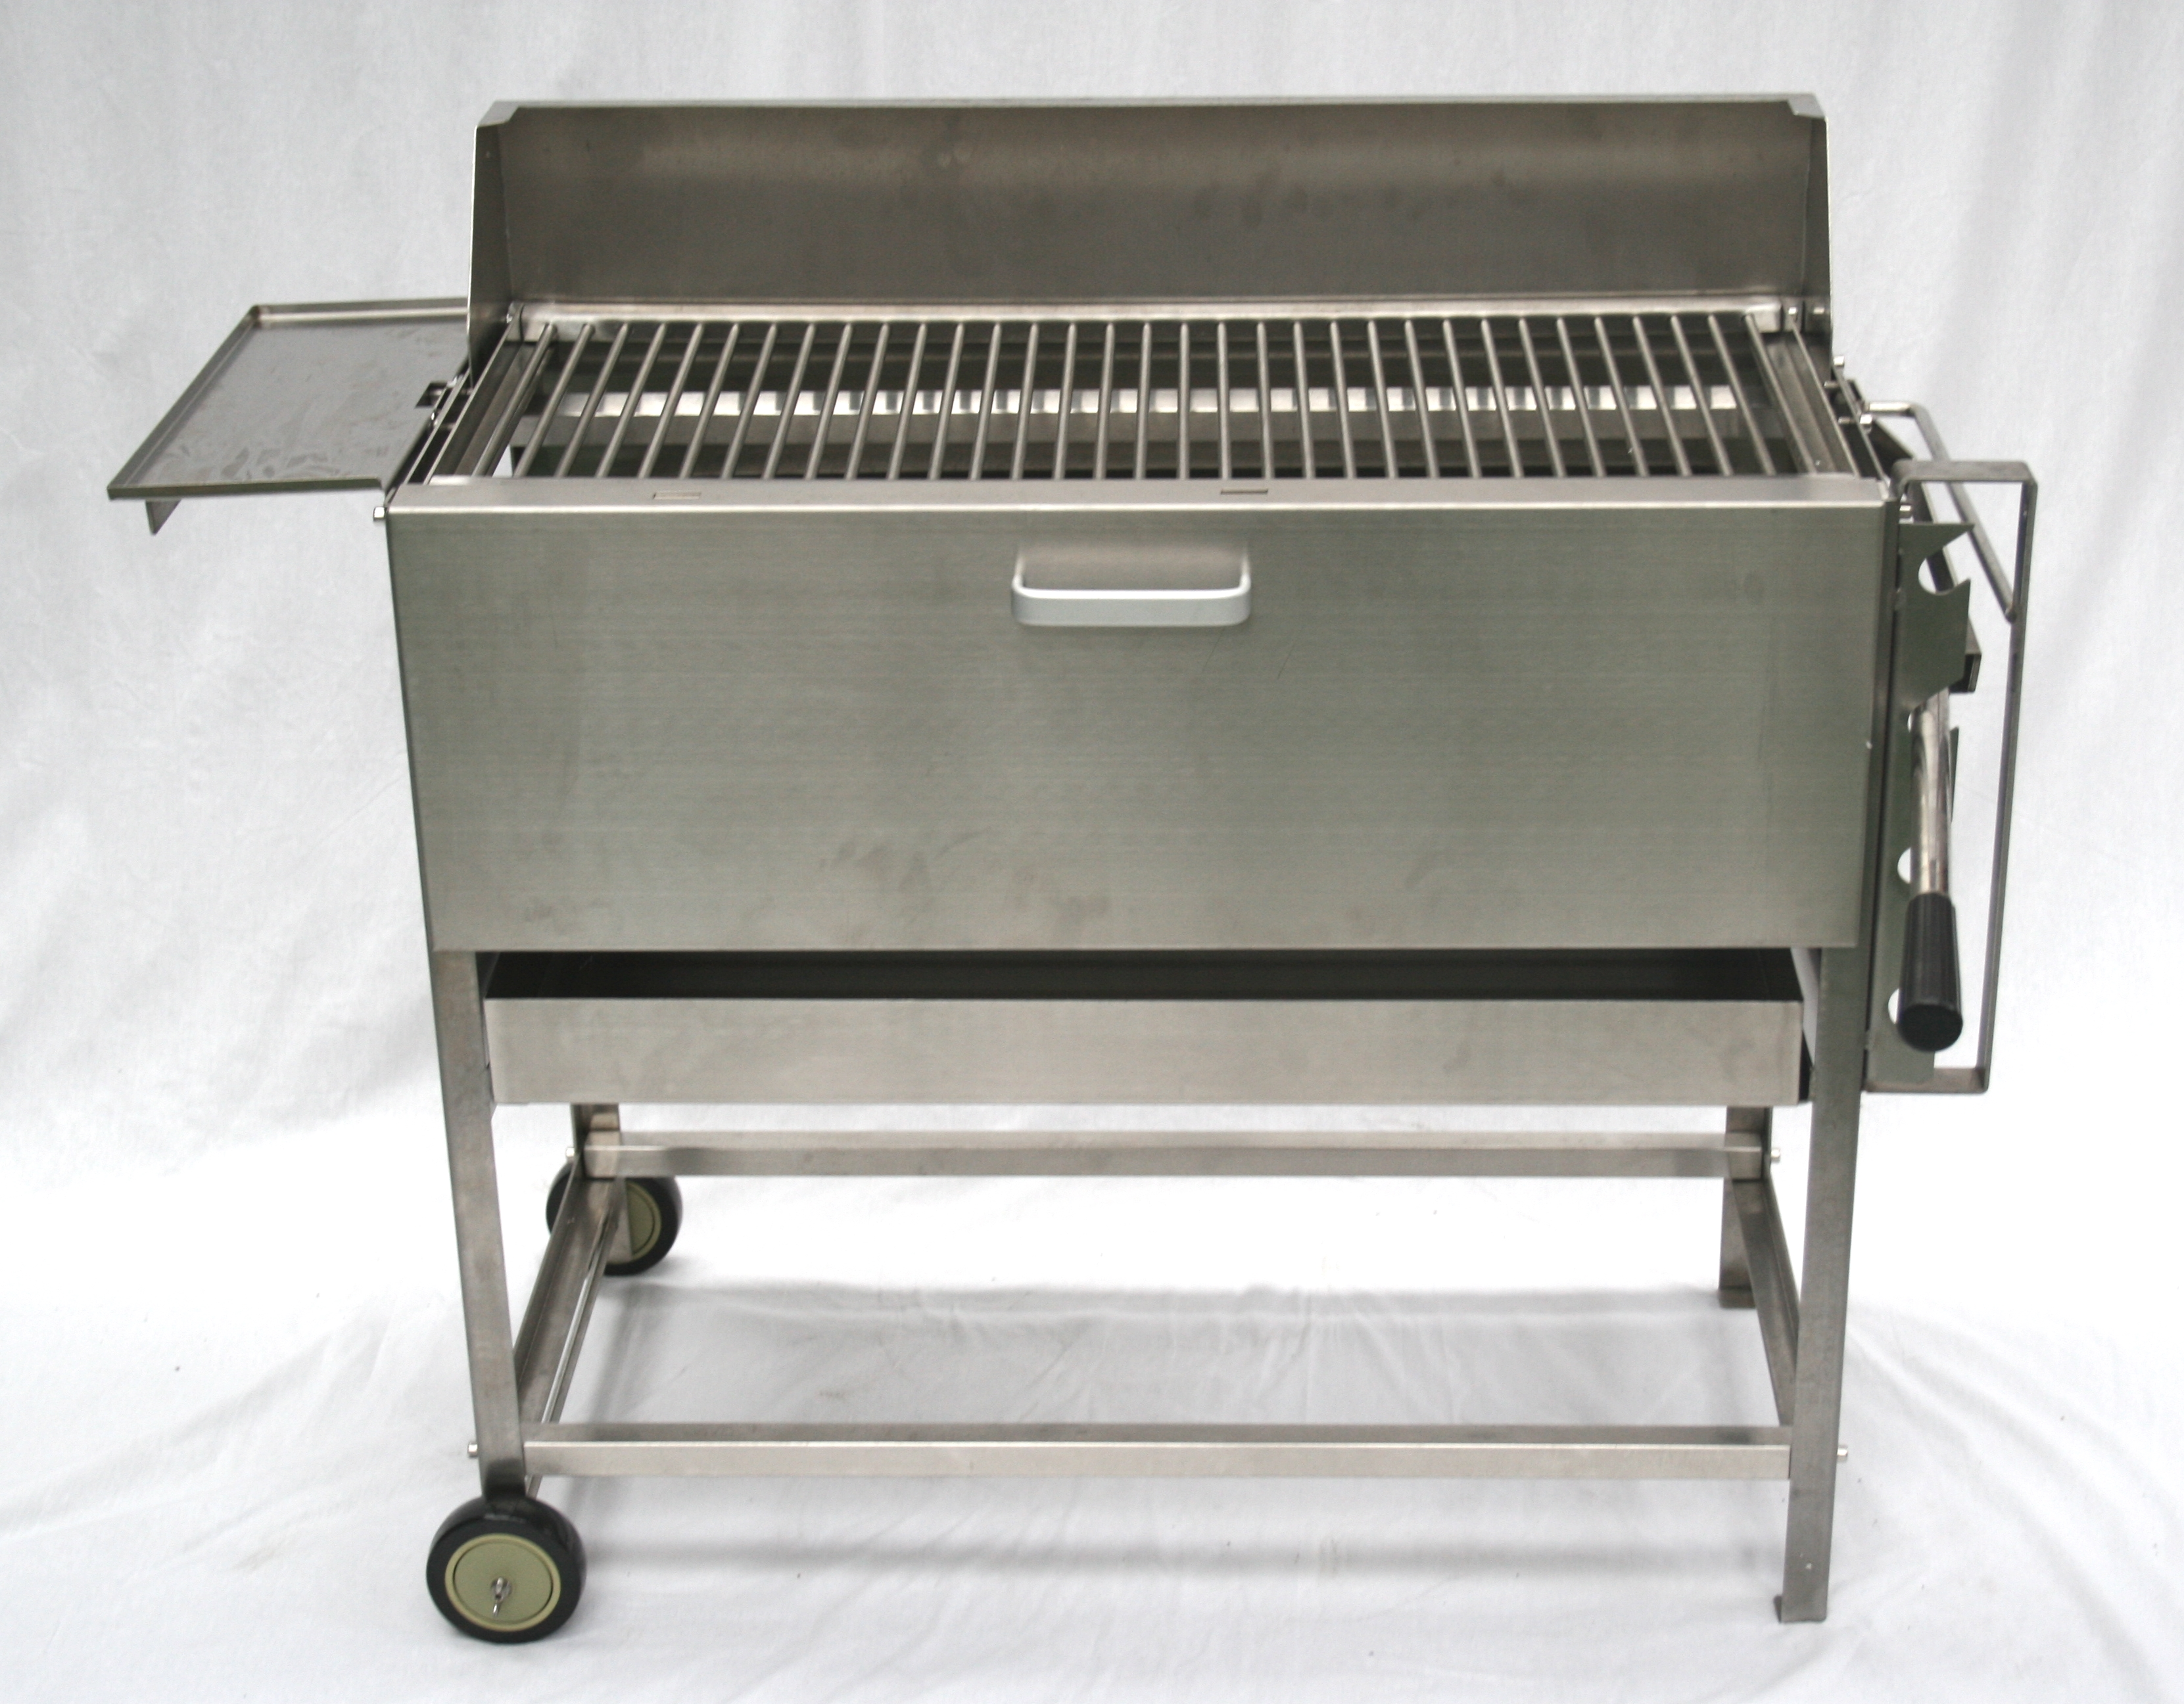 The Commercial Stainless Steel Excalibur Charcoal Bbq